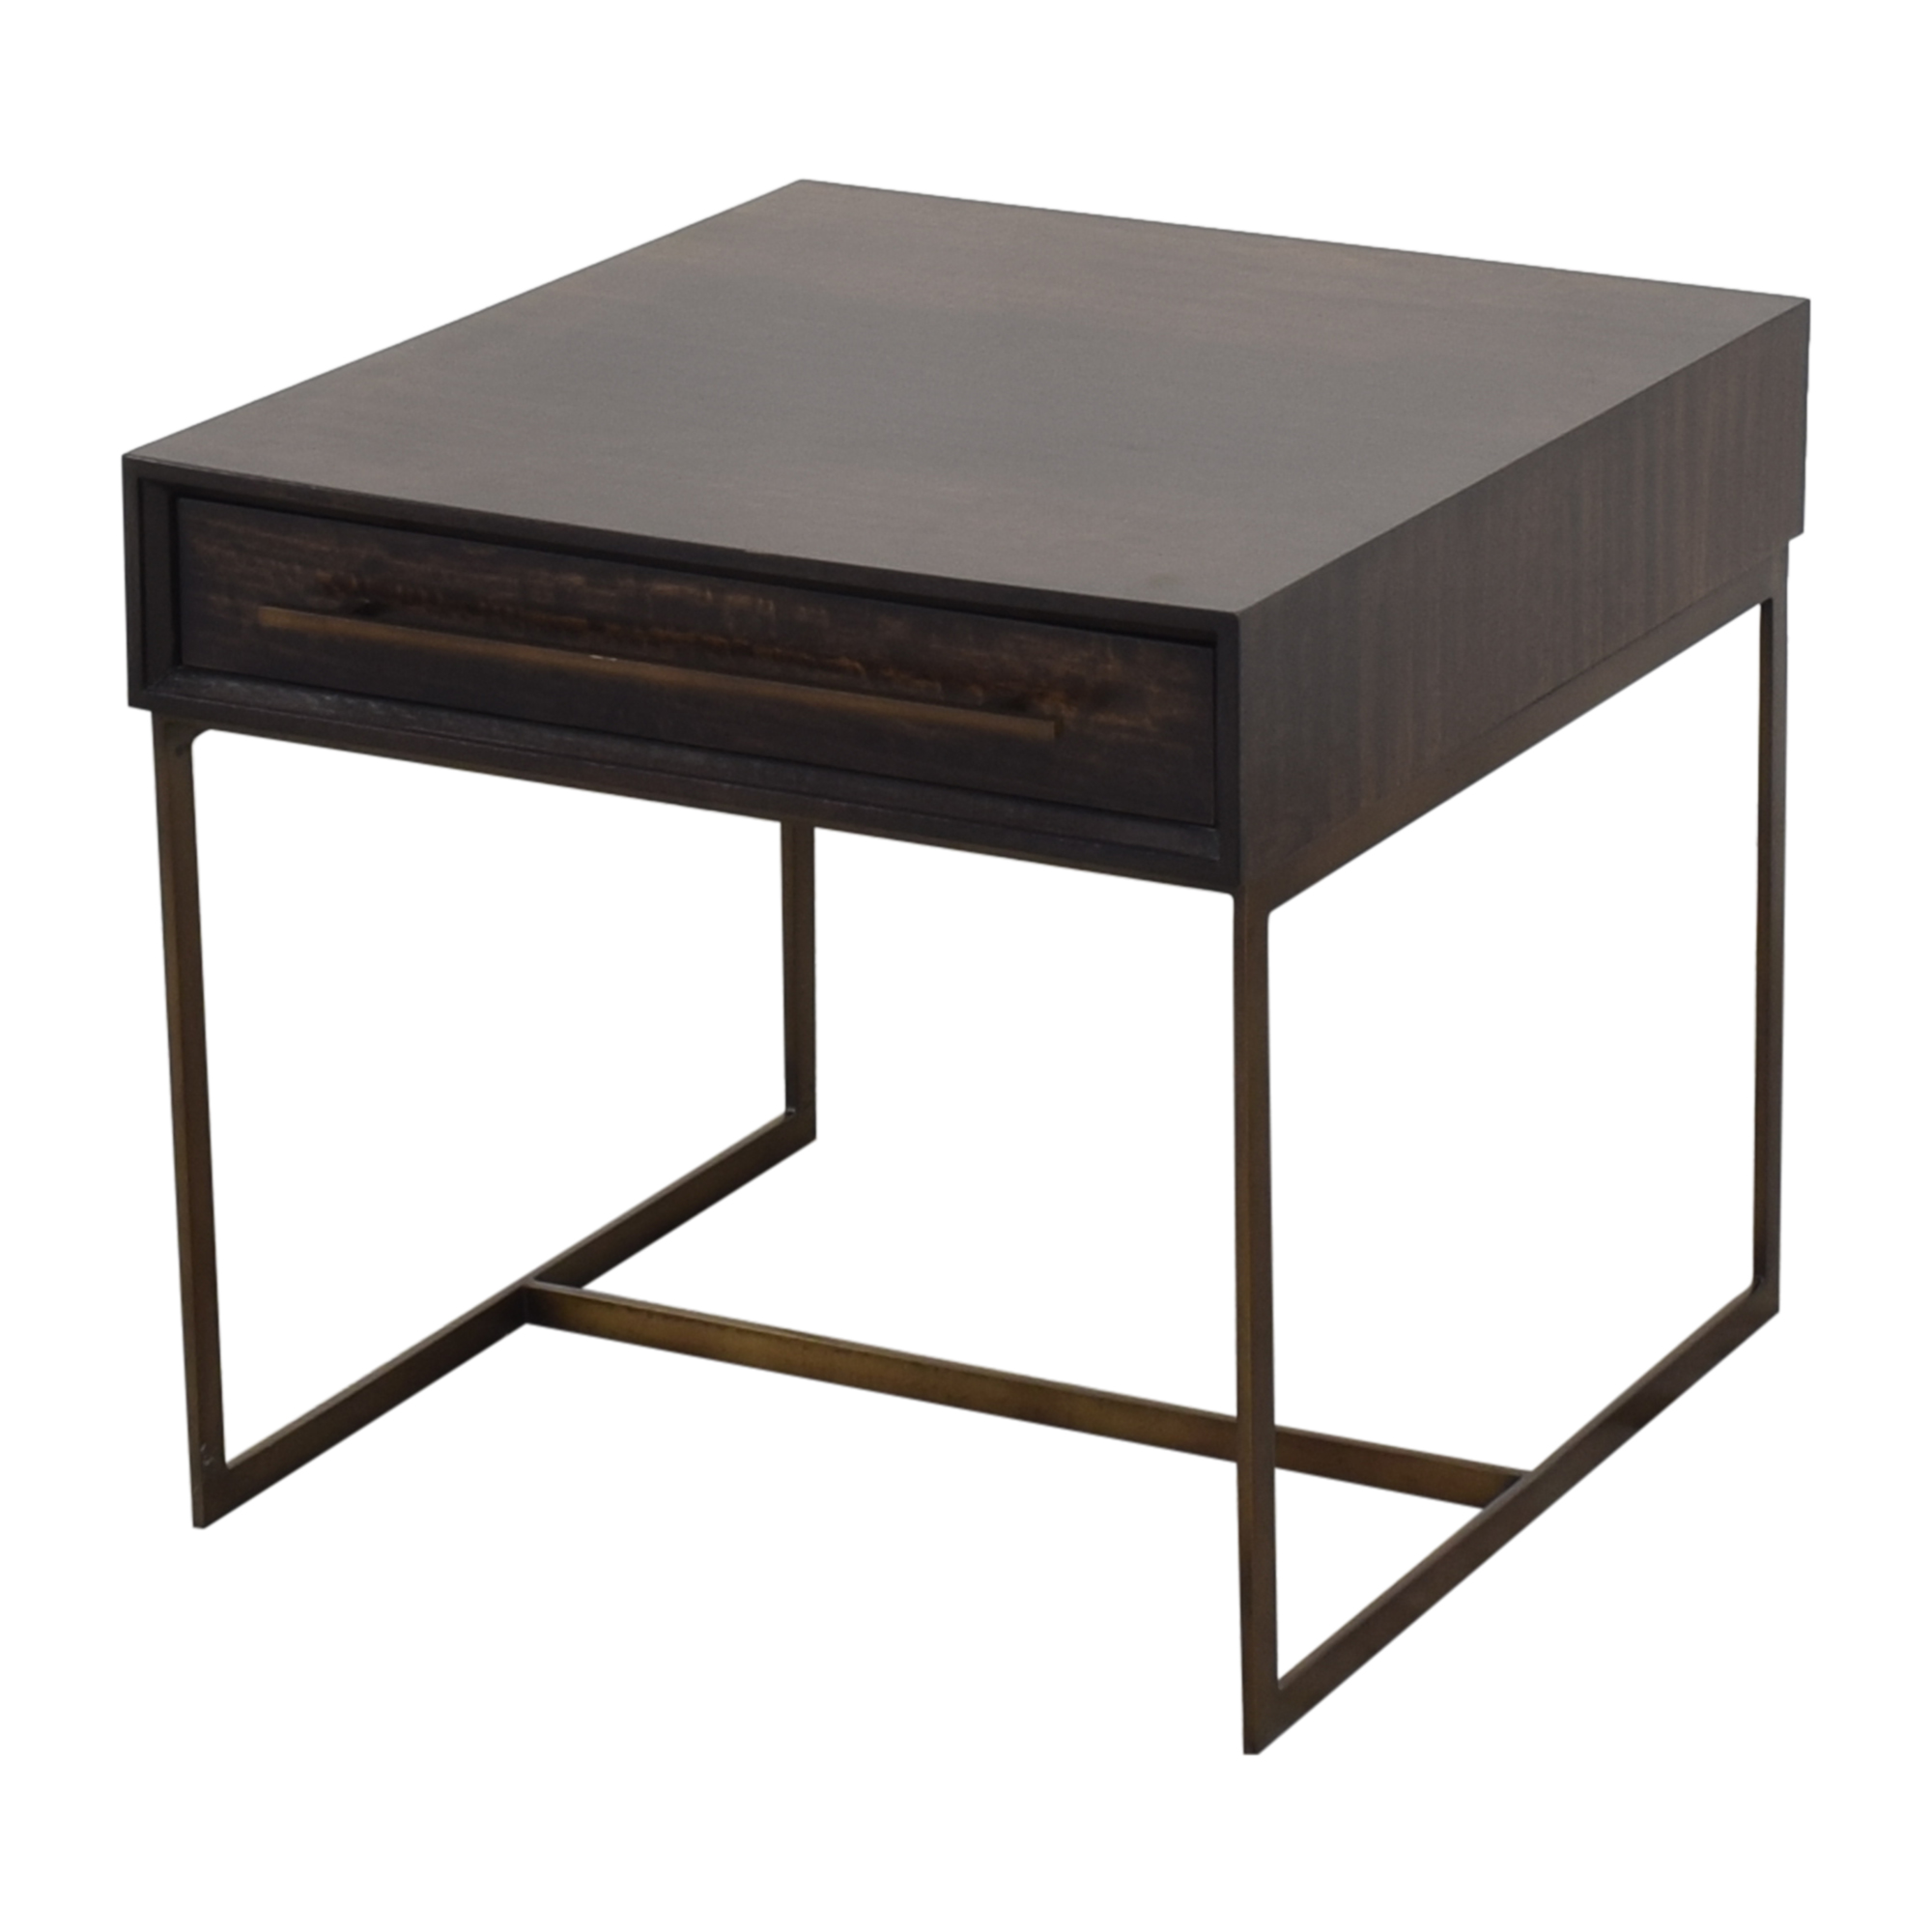 Mitchell Gold + Bob Williams Mitchell Gold + Bob Williams Allure Drawer Side Table discount